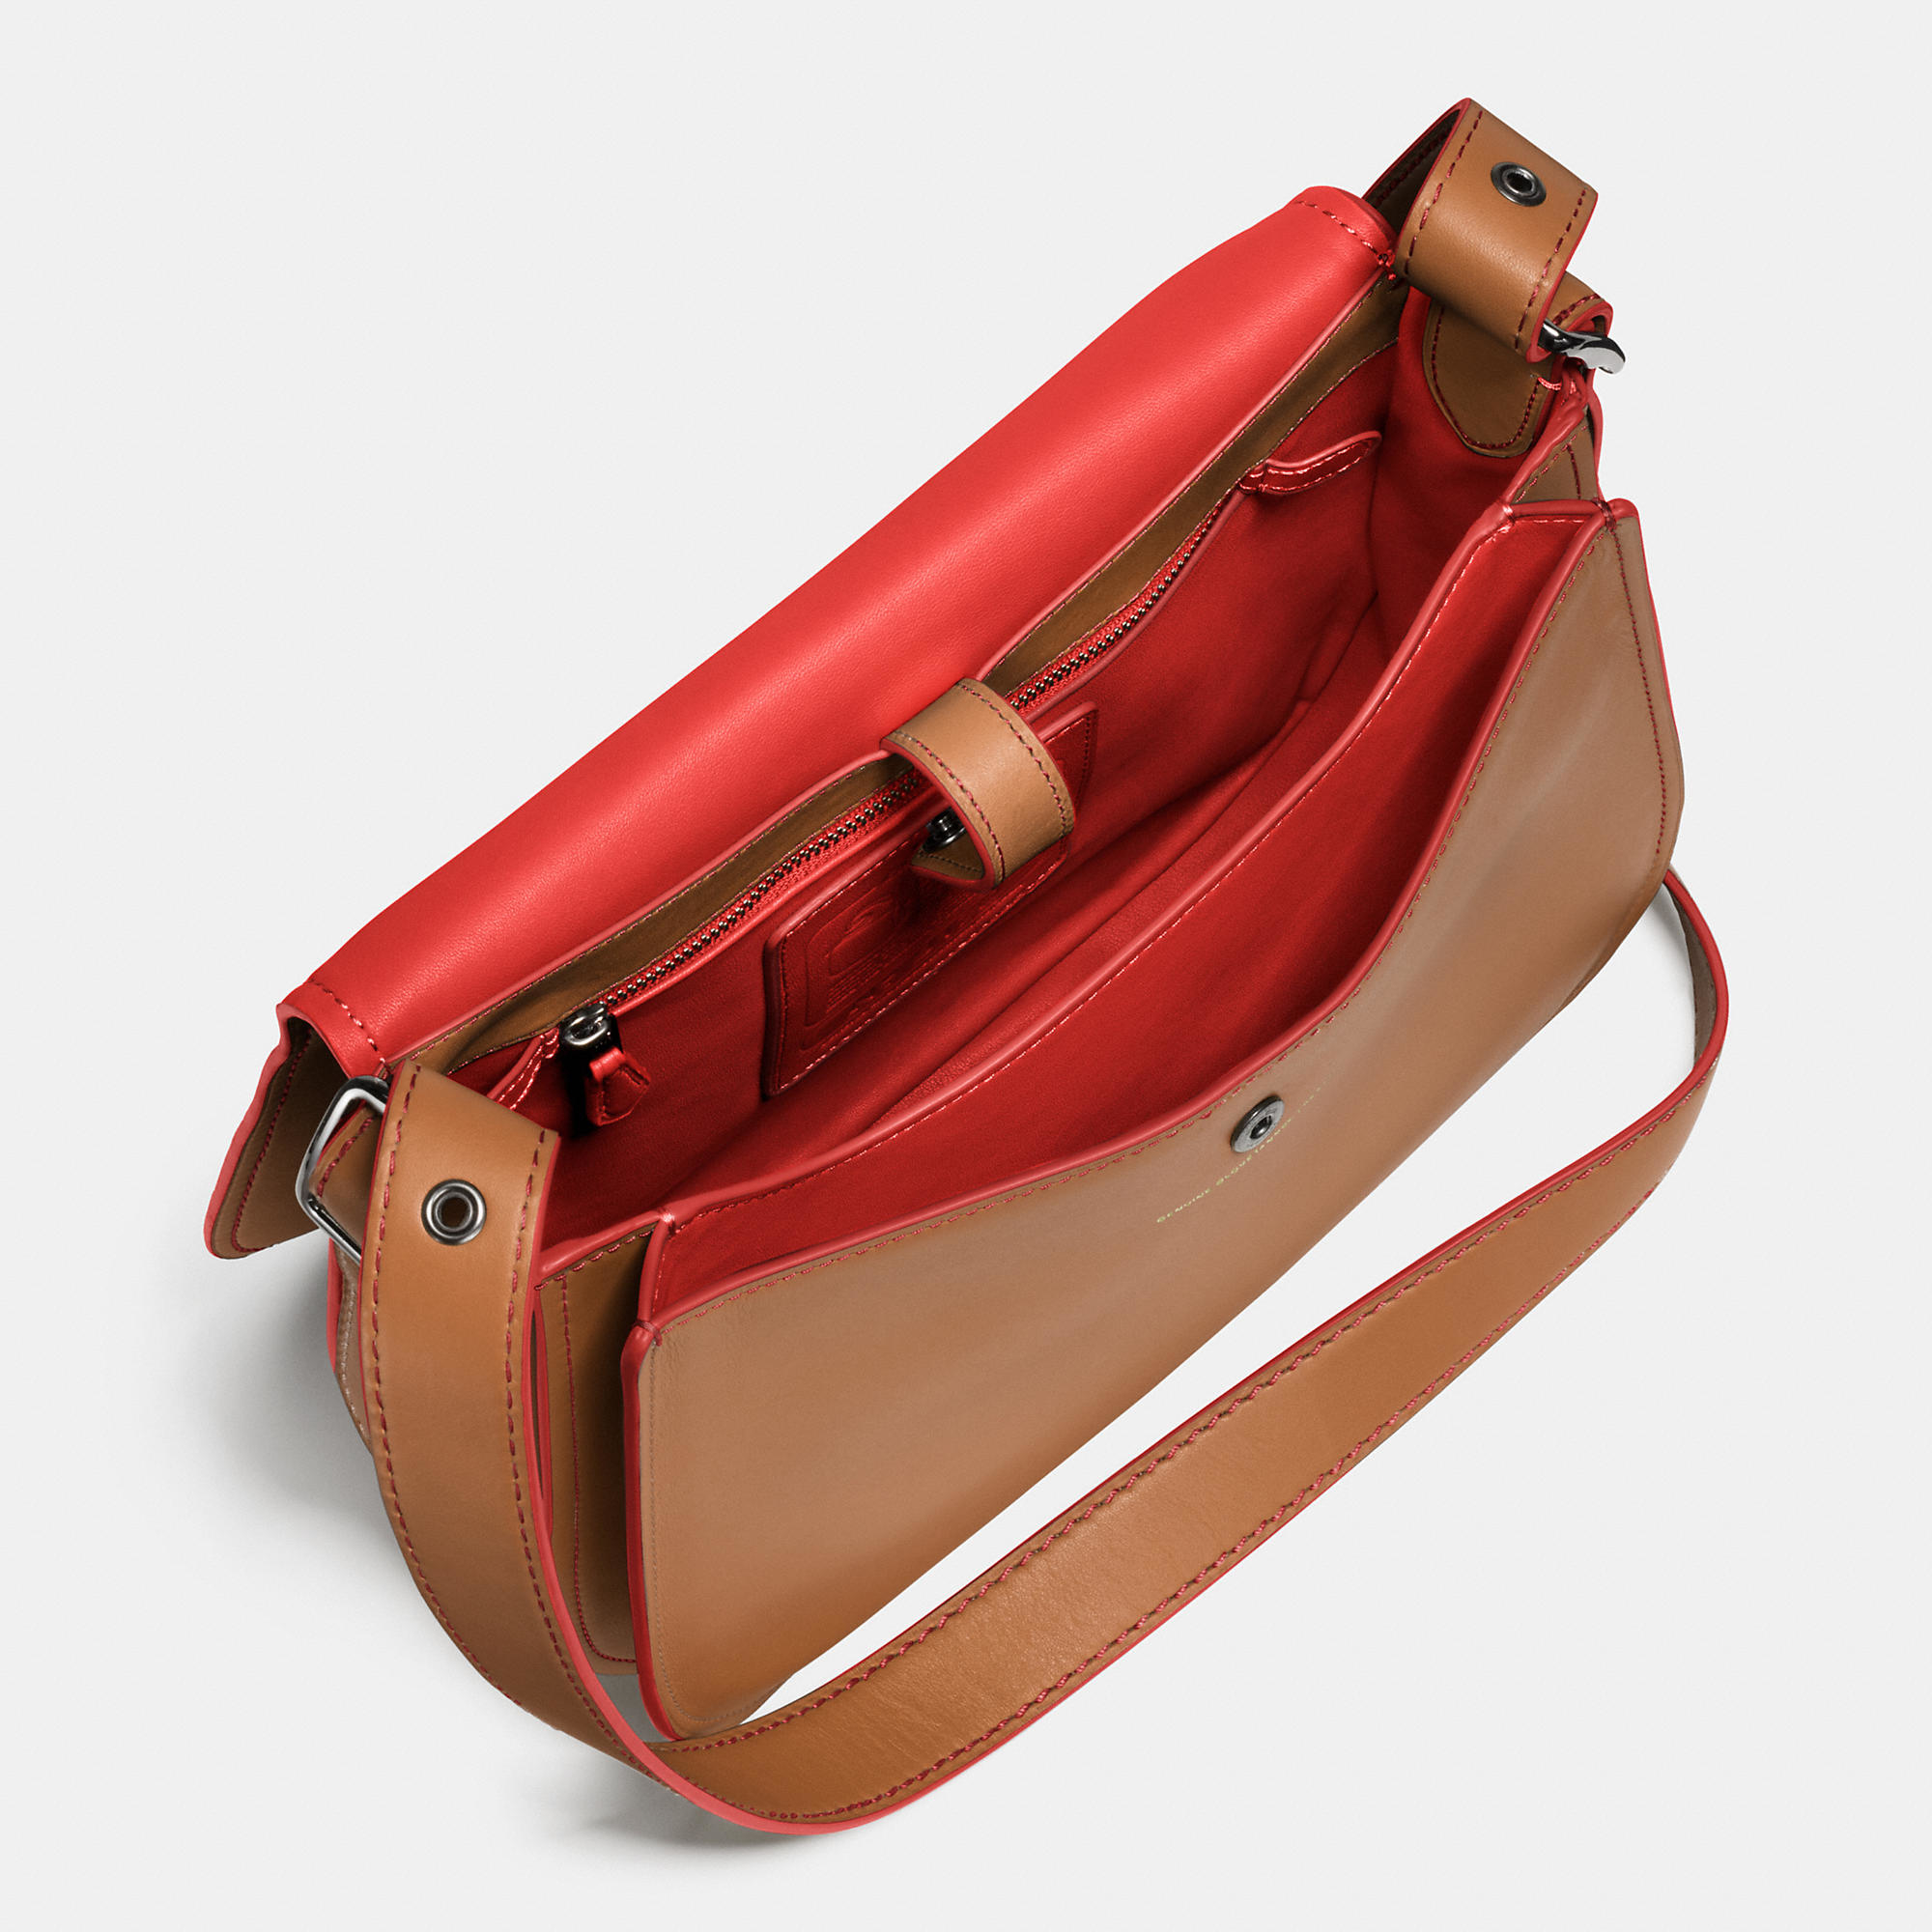 Lyst - Coach Saddle Bag In Glovetanned Leather in Brown Saddle Bag